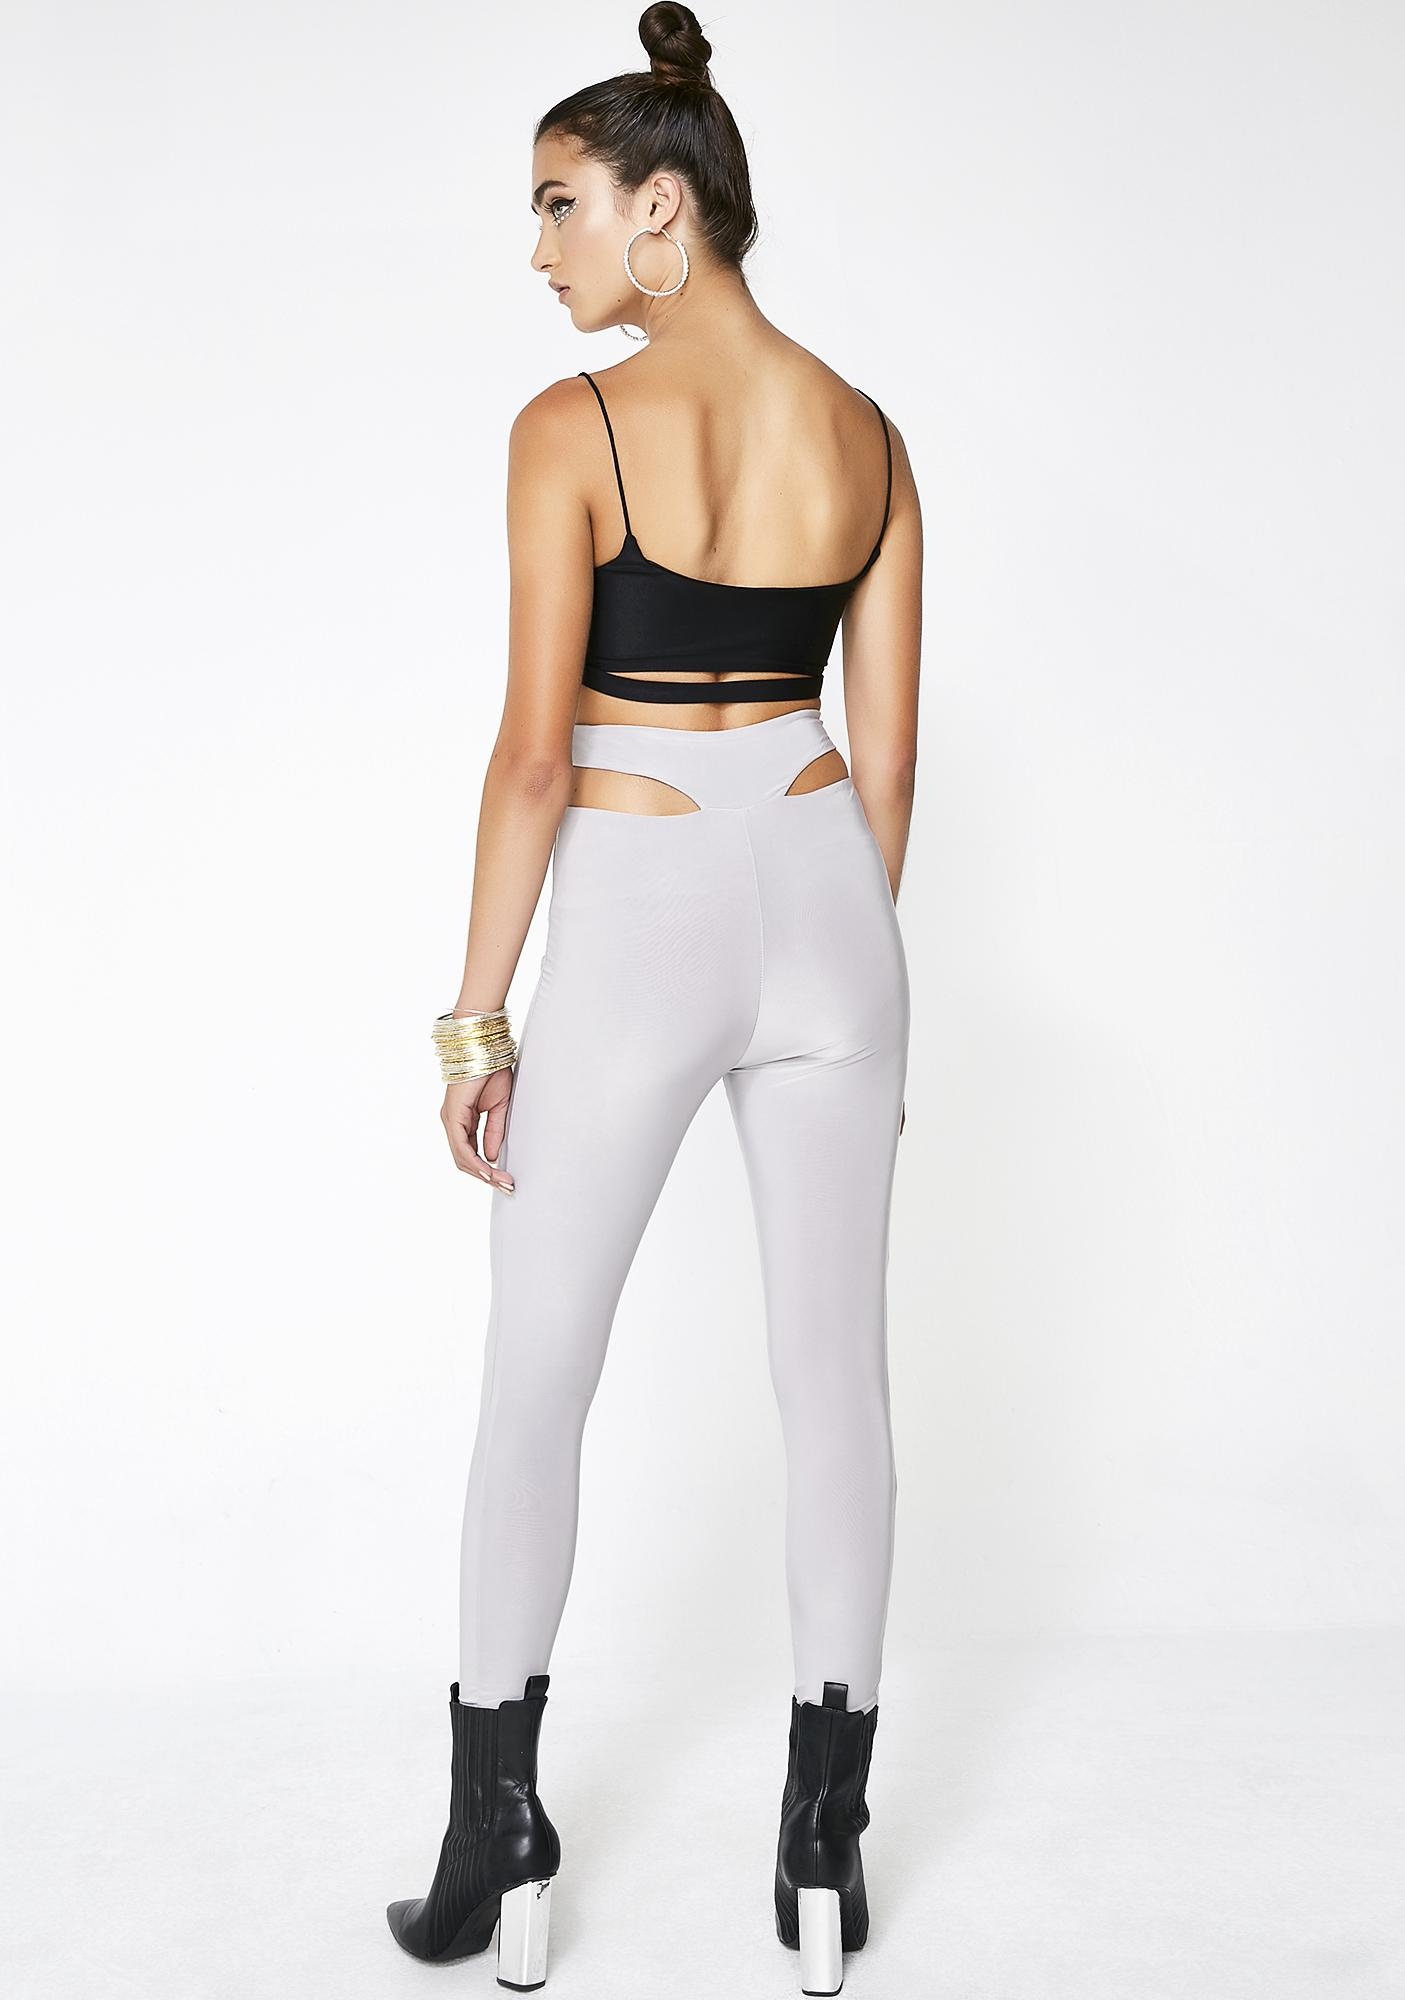 Misty Aim To Tease Cut Out Leggings